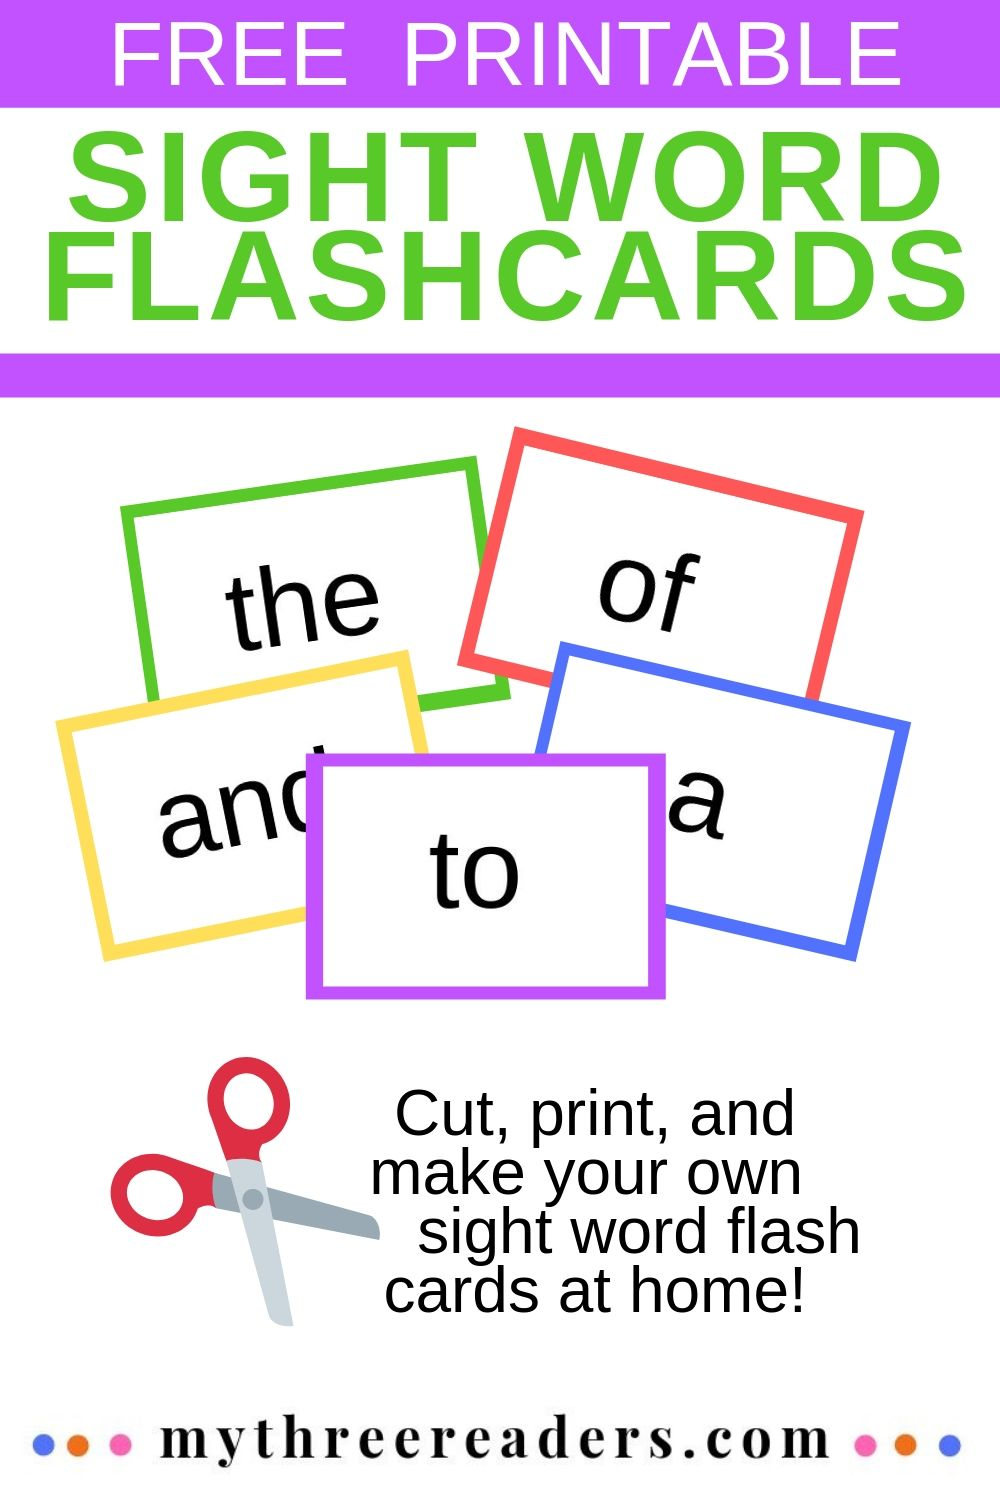 Free Sight Word Flash Cards